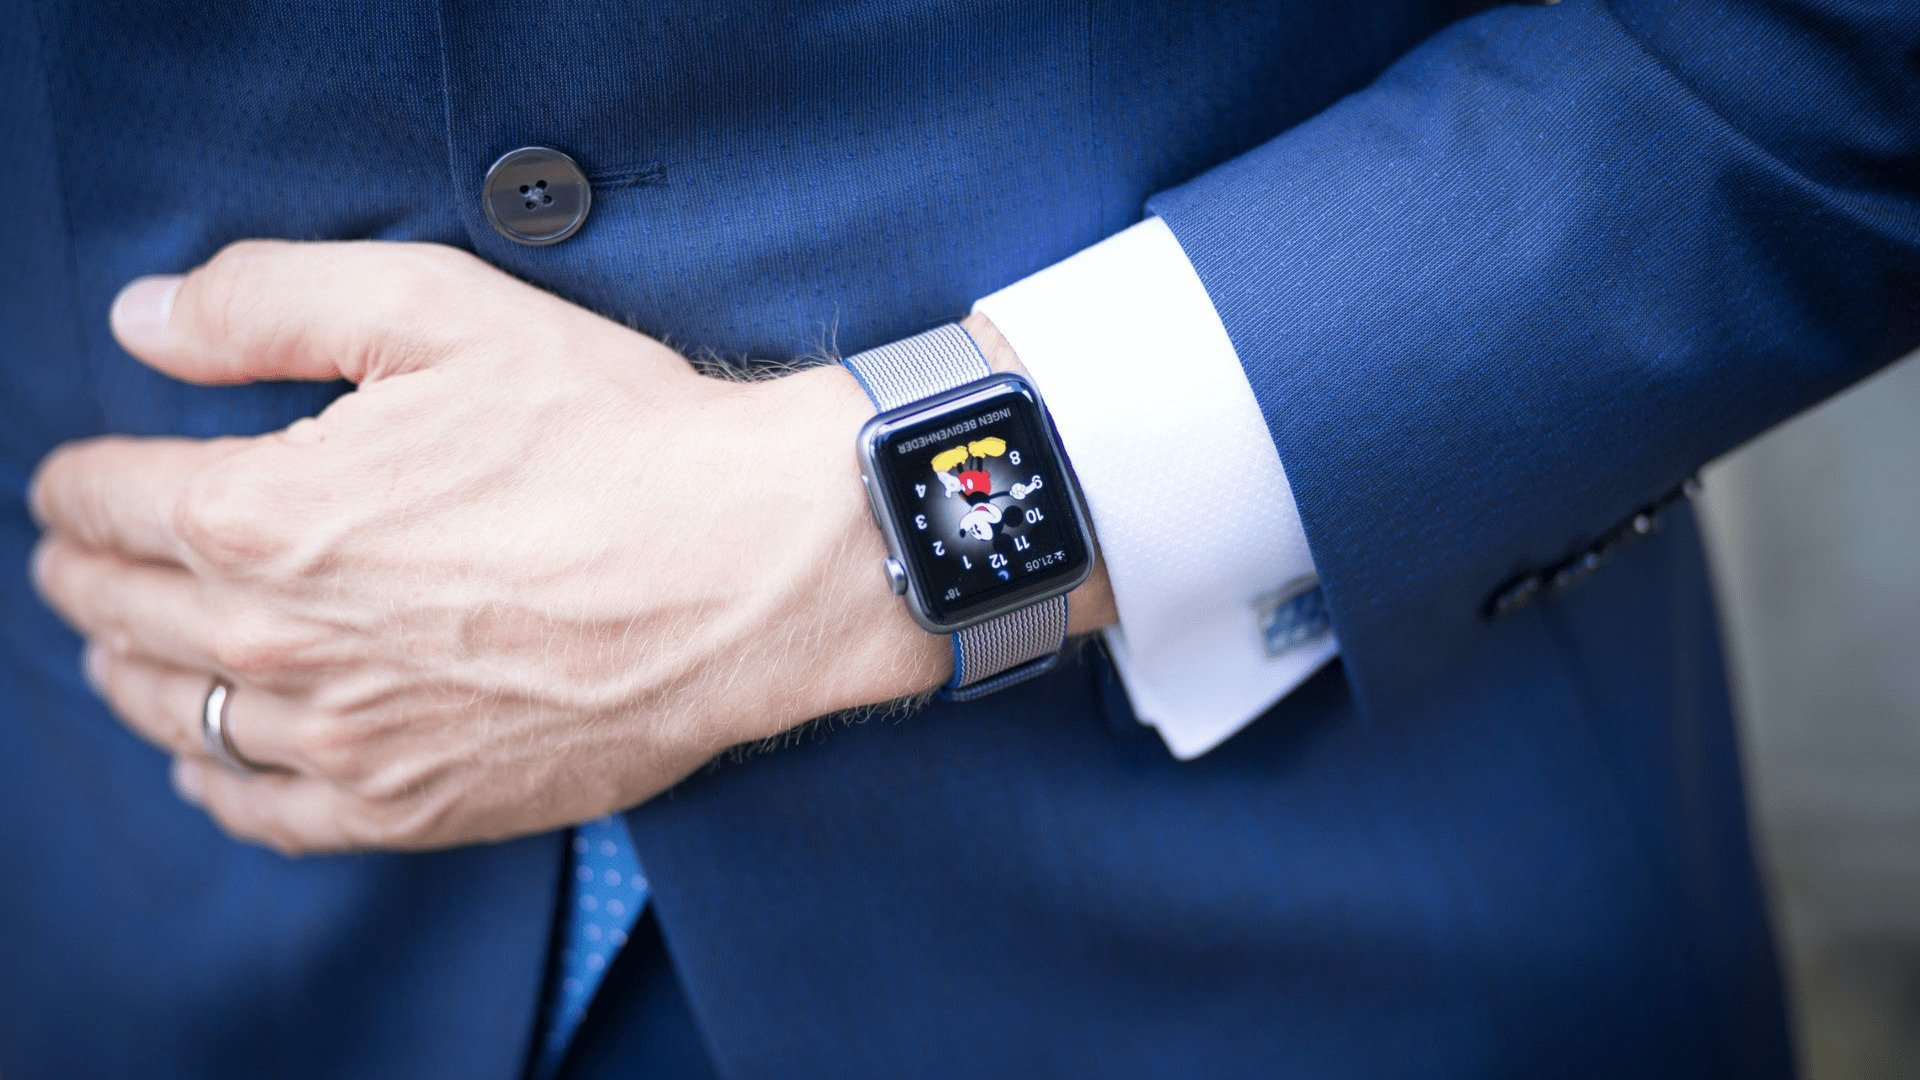 Smartwatches / Photo by Rene Asmussen from Pexels